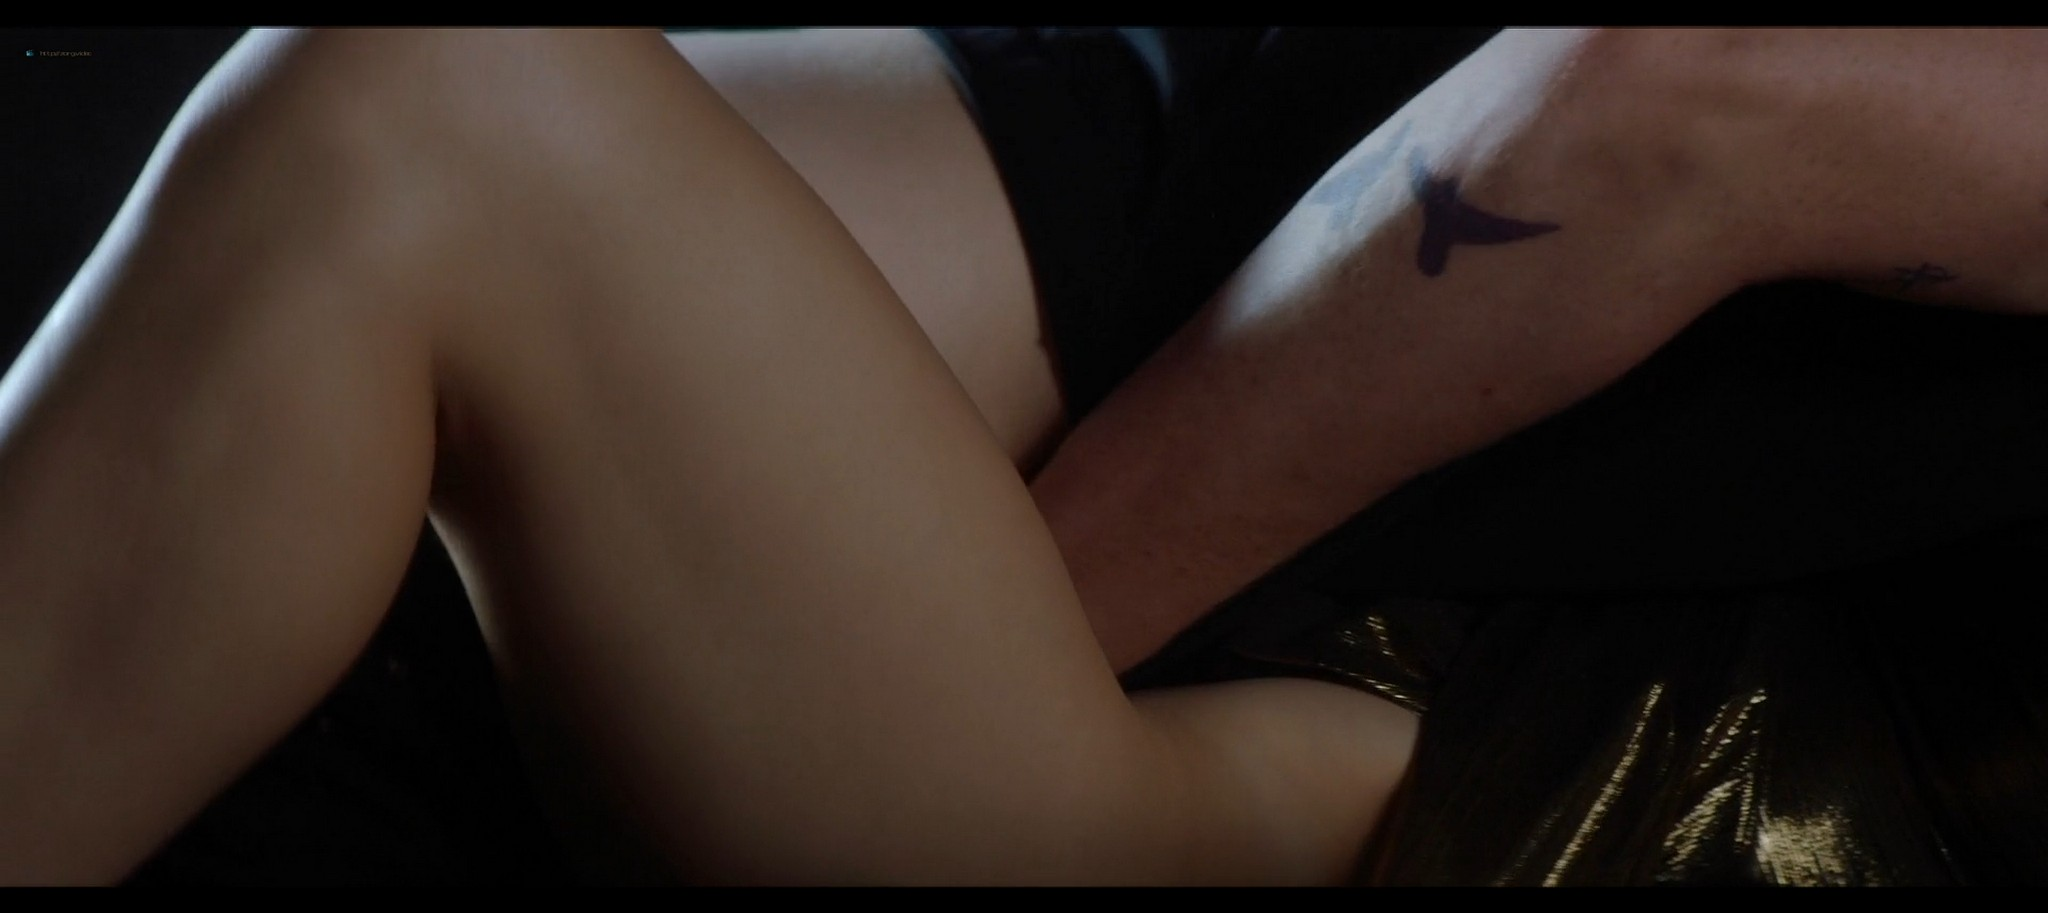 Josephine Langford hot and a lot of sex After We Collided 2020 HD 1080p Web 006